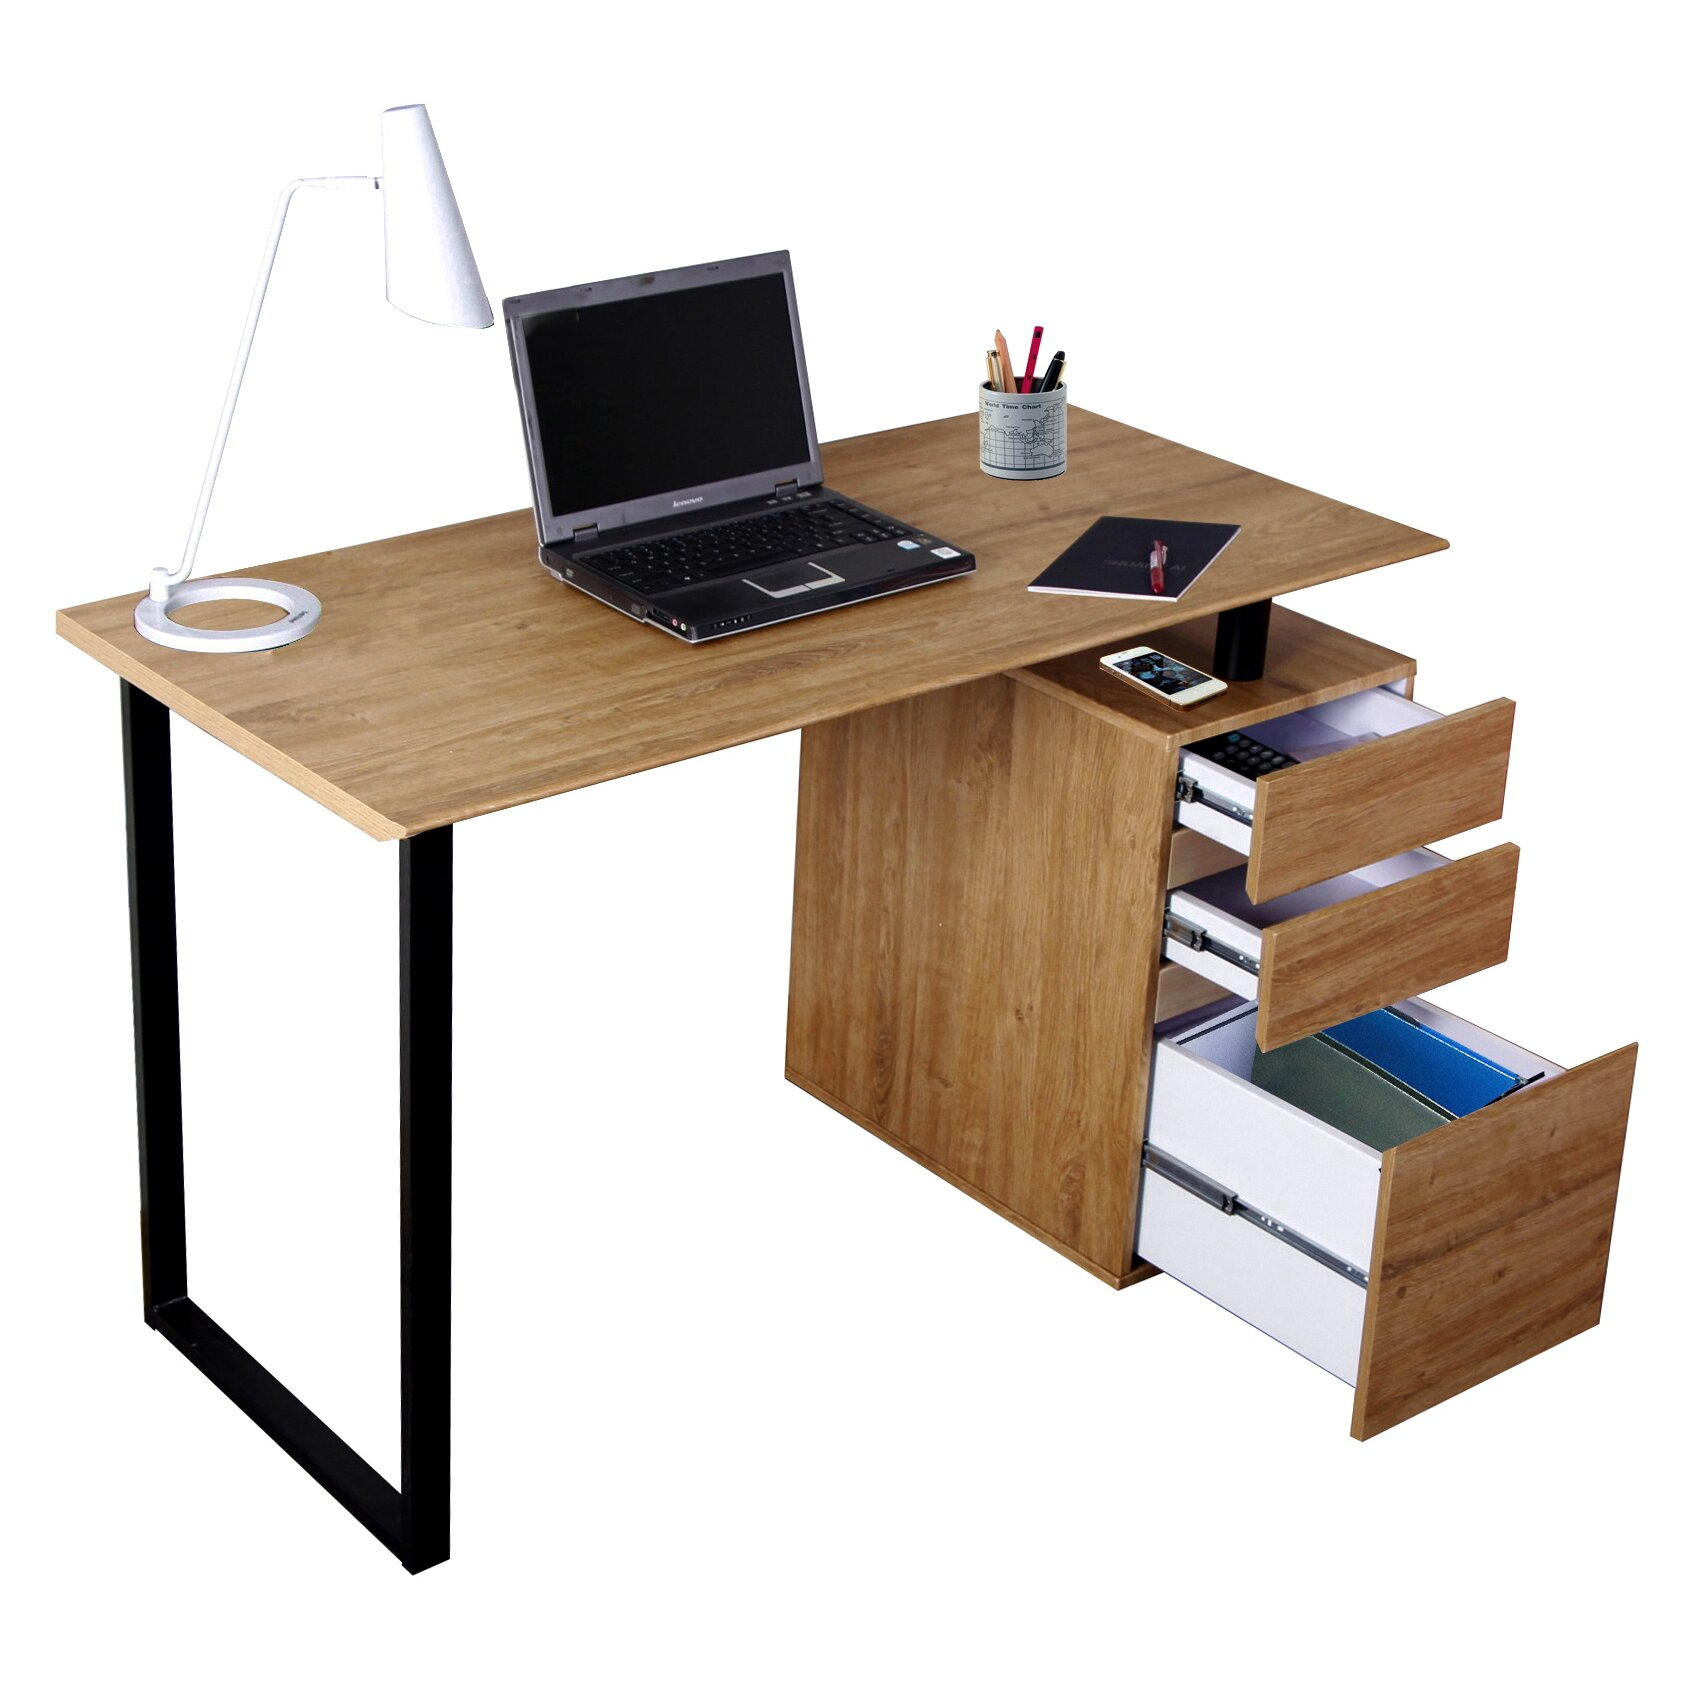 techni mobili computer desk with storage and file cabinet reviews wayfair. Black Bedroom Furniture Sets. Home Design Ideas